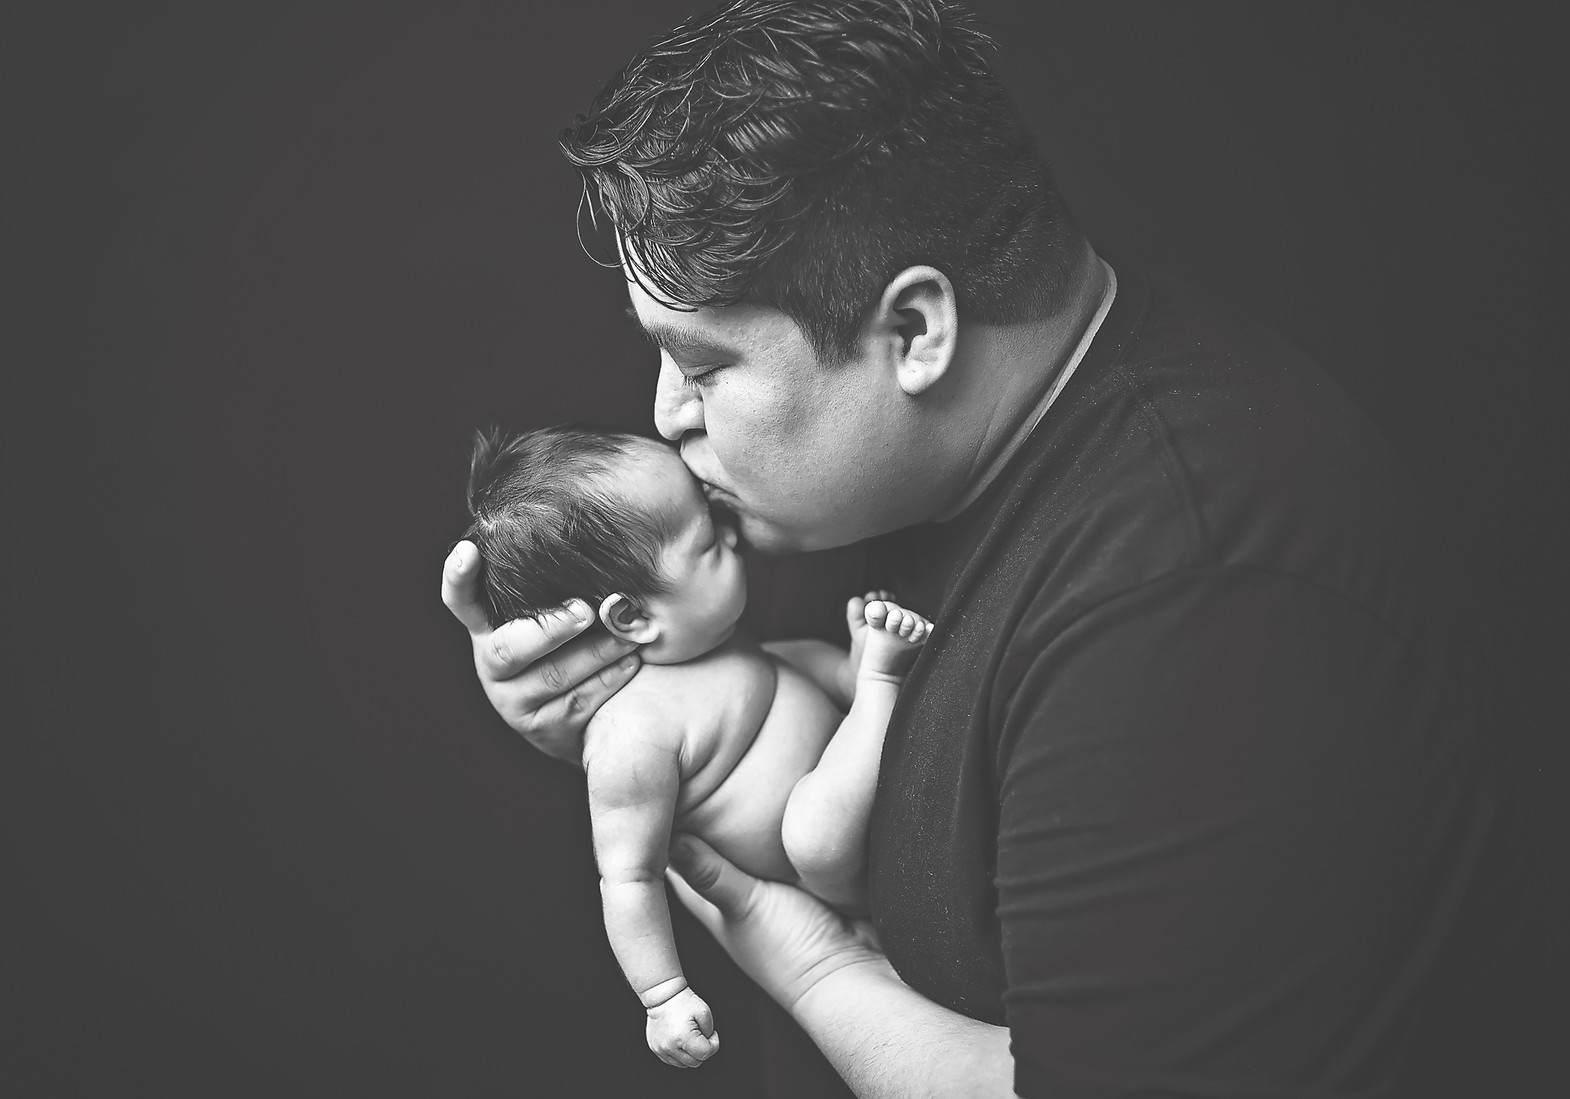 newborn in dad's hands indianapolis photo studio session black and white